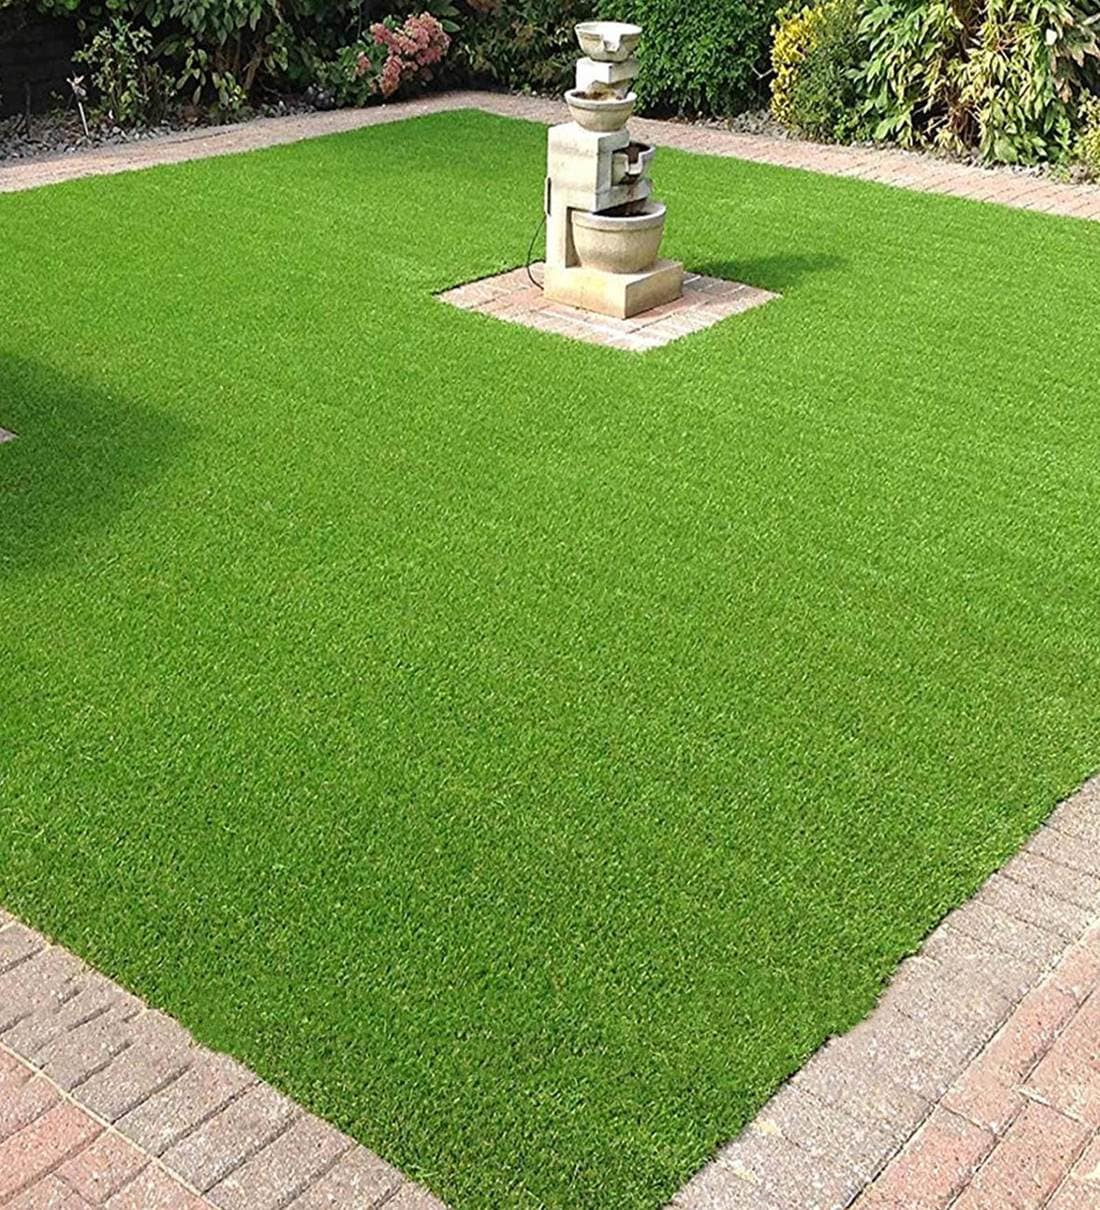 Buy Green Polyster Uv Resistant Artificial Lawn Grass For Balcony, Doormat And Lawn Use By Fourwalls Online - Artificial Grass - Artificial Grass - Home Decor - Pepperfry Product